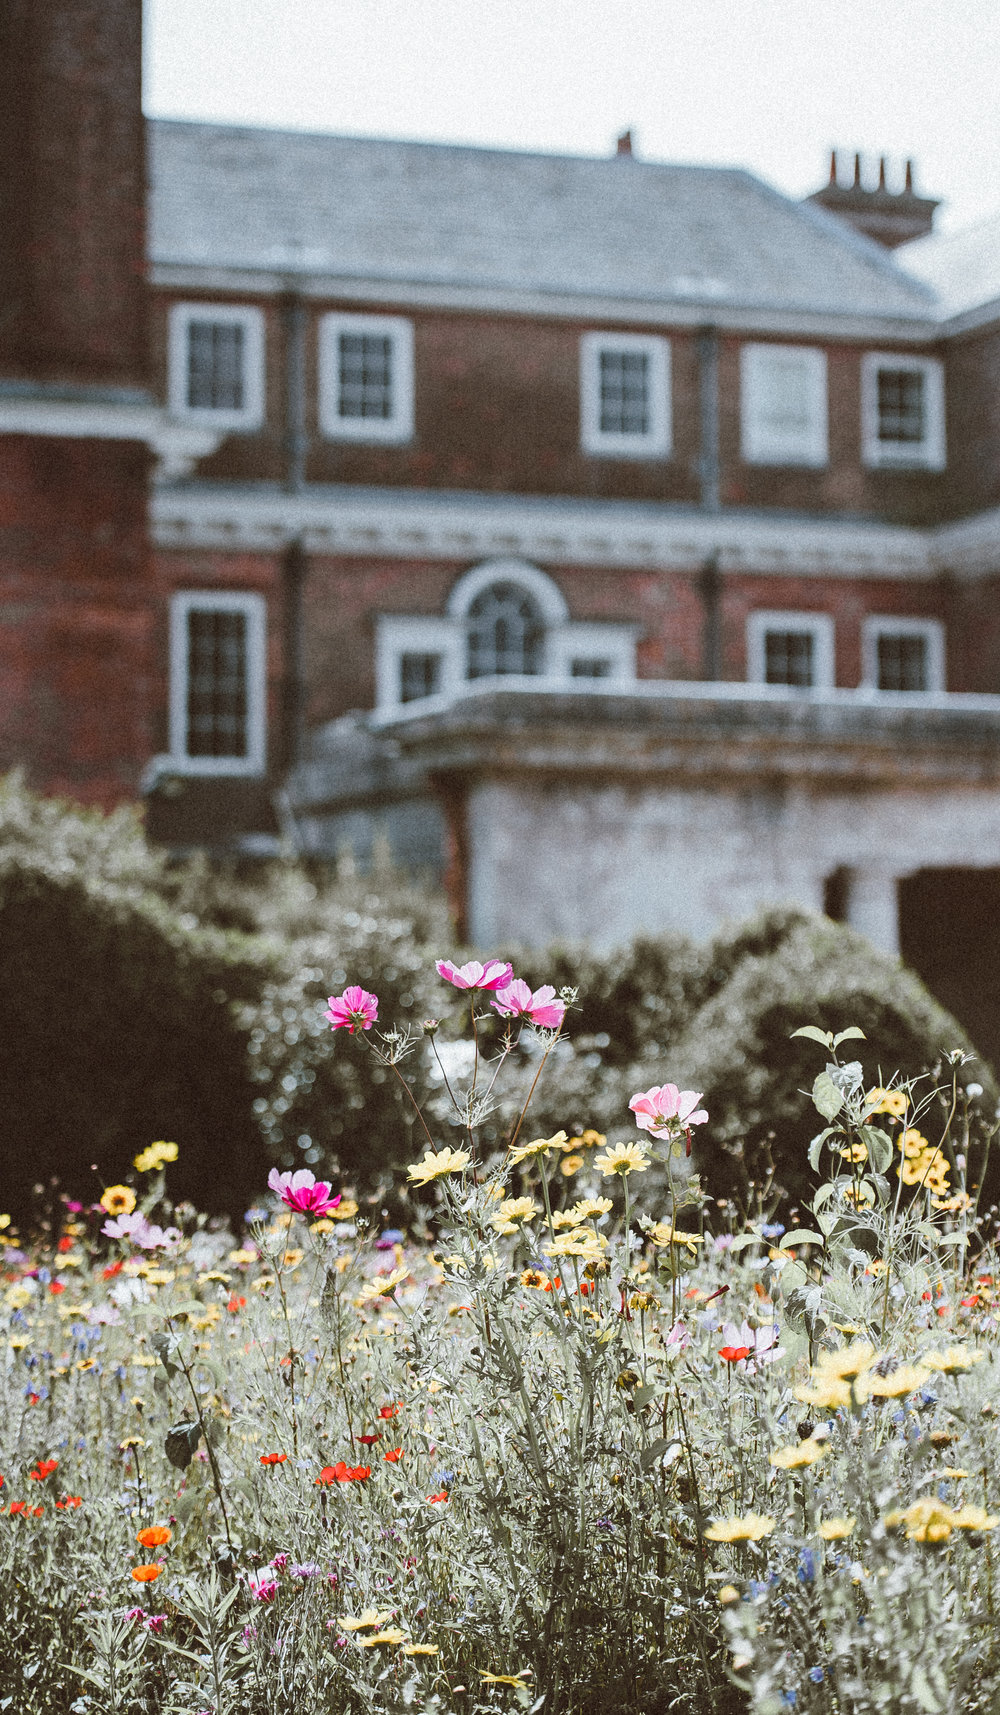 National Trust Uppark House-41.jpg